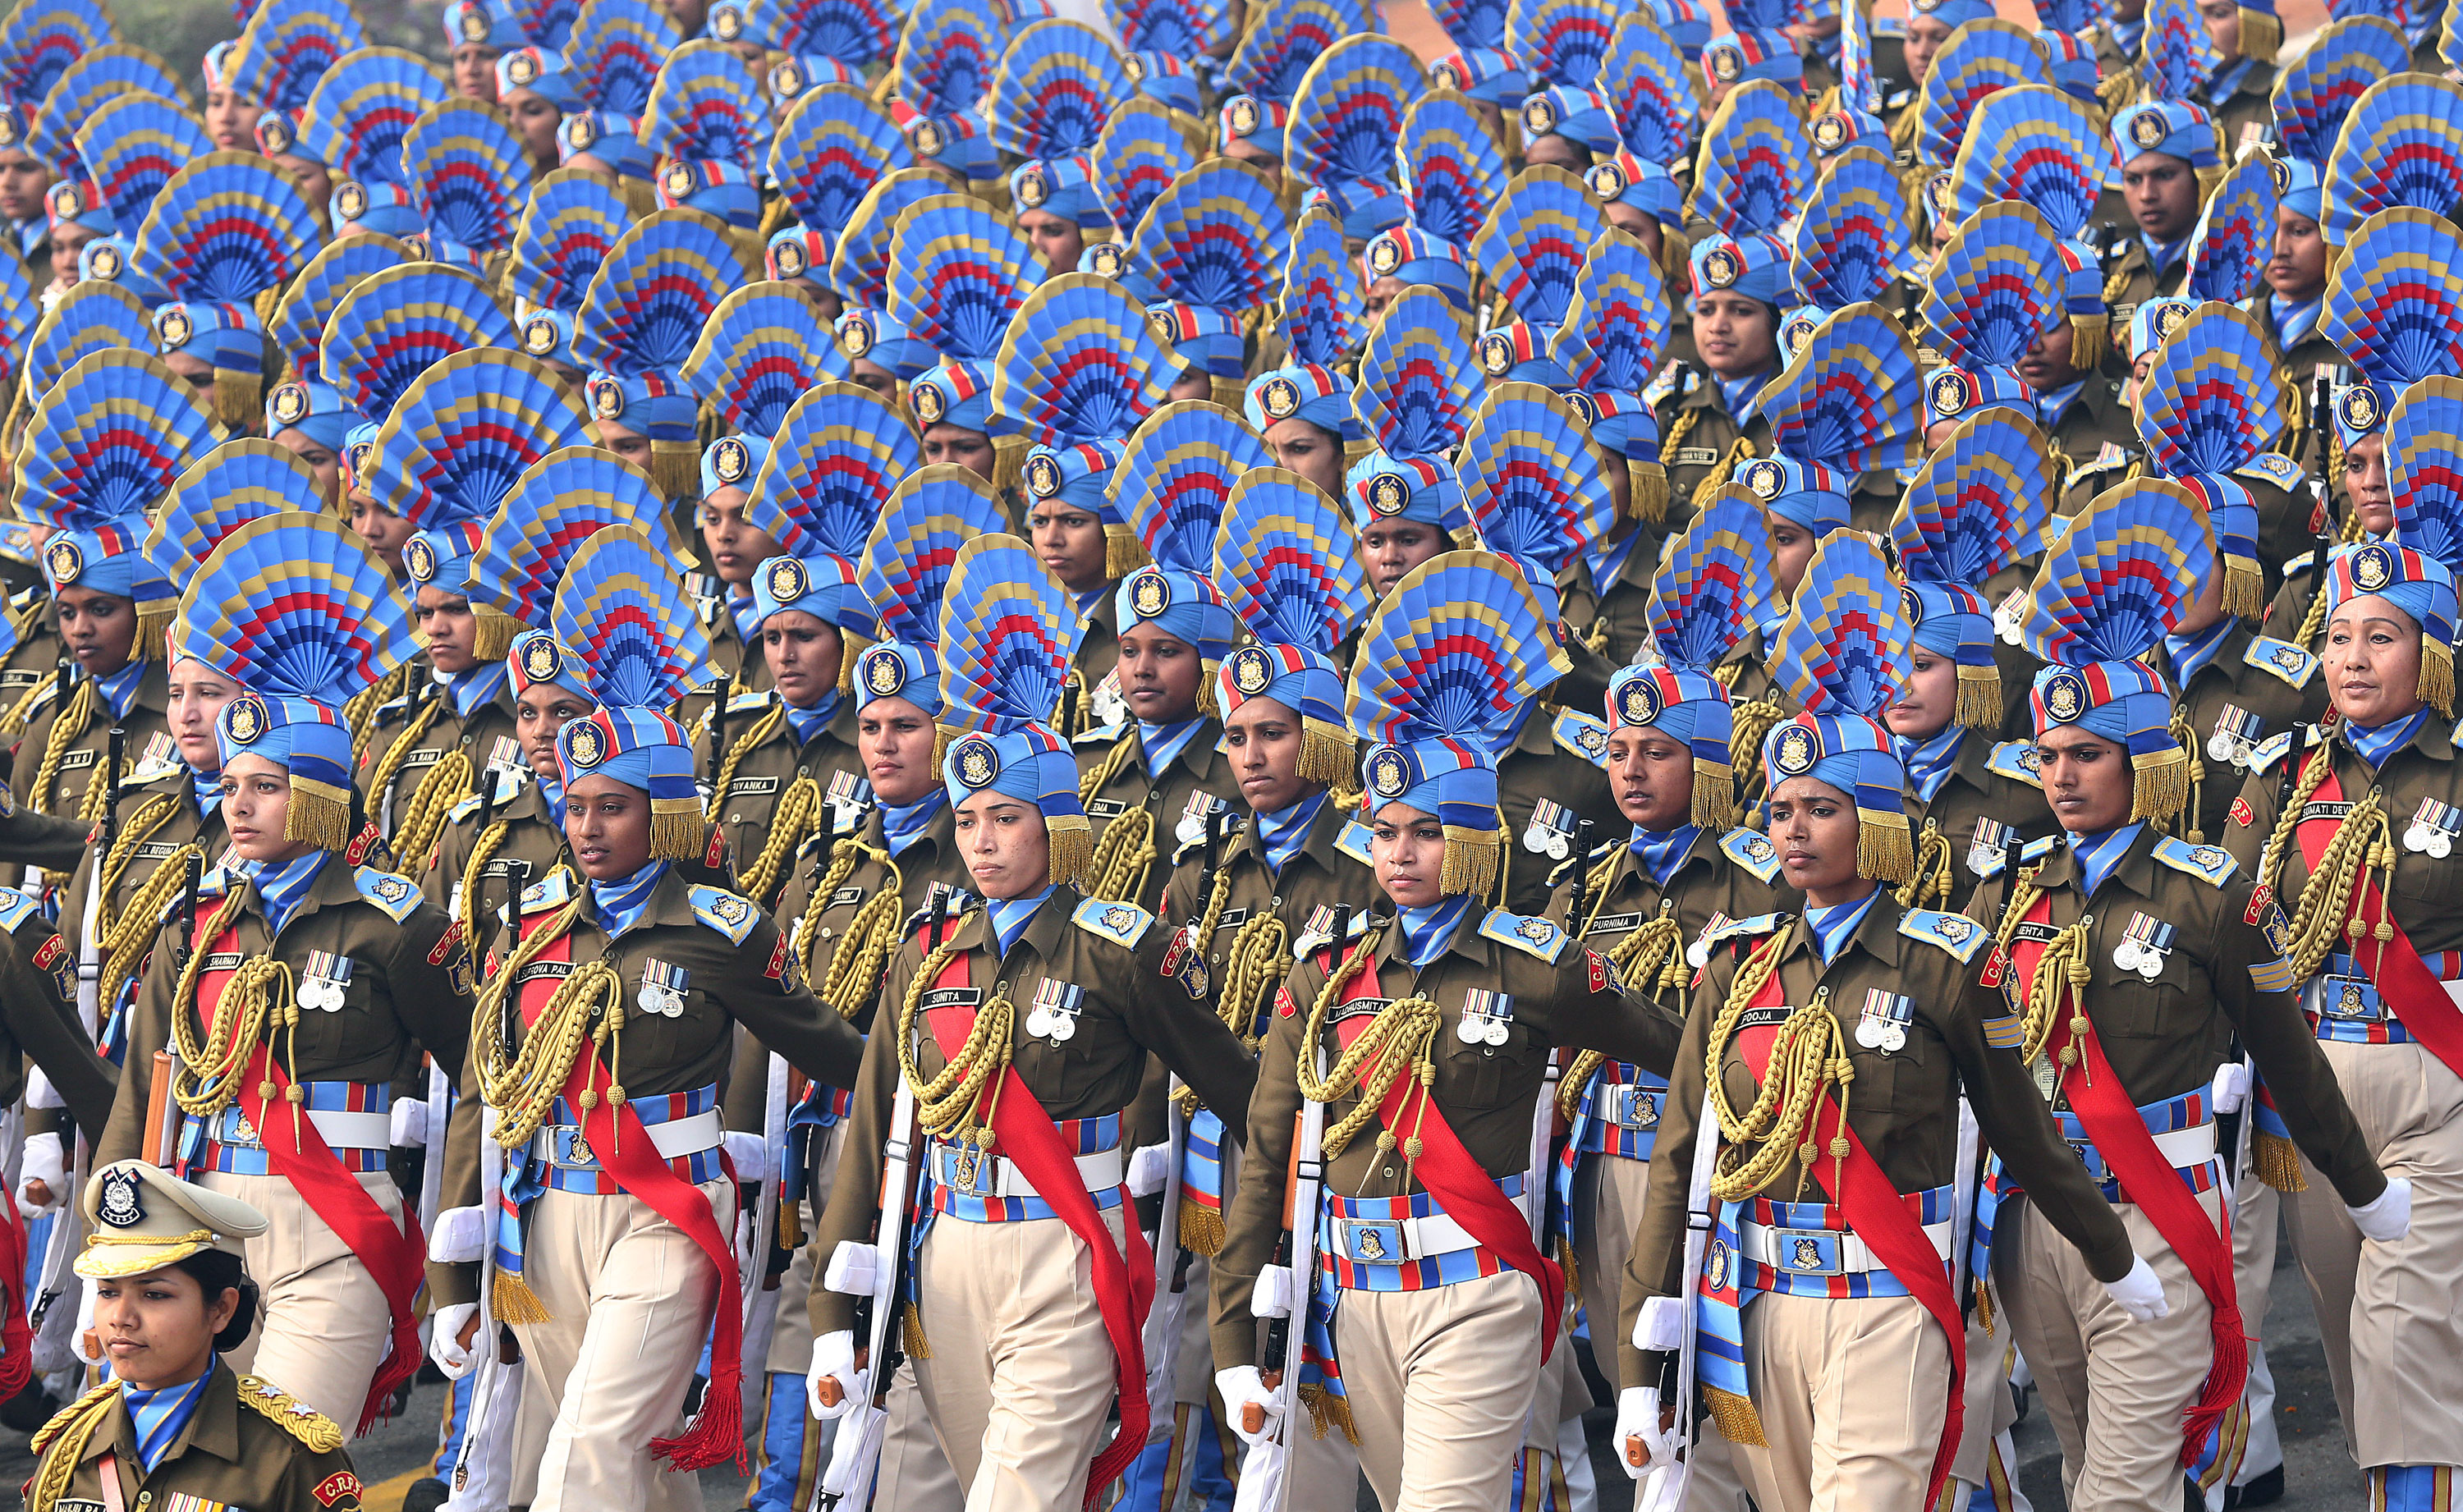 An all-female unit of the Central Reserve Police Force participates in the 67th Republic Day parade in New Delhi. [Harish Tyagi/EPA]